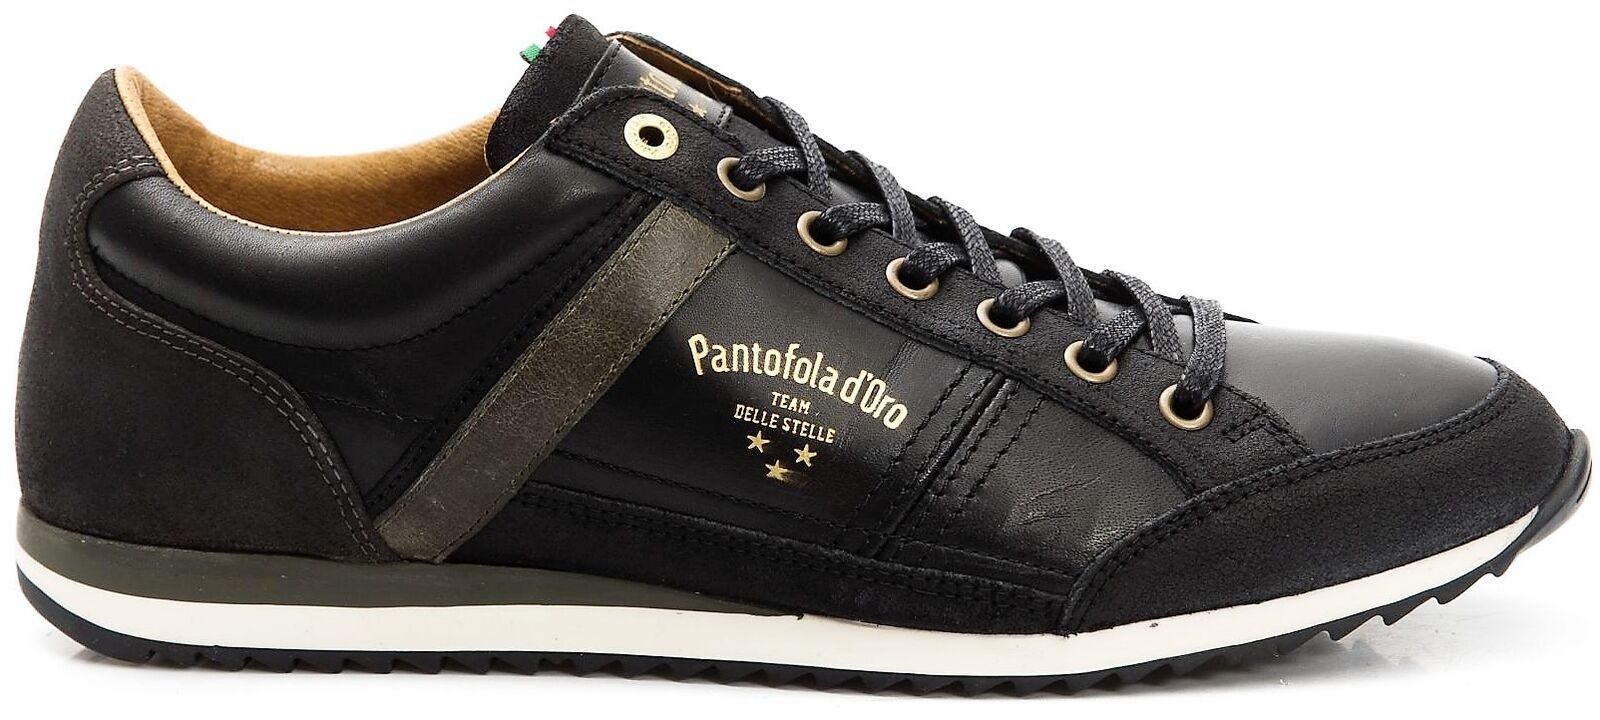 shoes Sneakers Pelle men Pantofola d'gold shoes Men Matera Low black 10183027